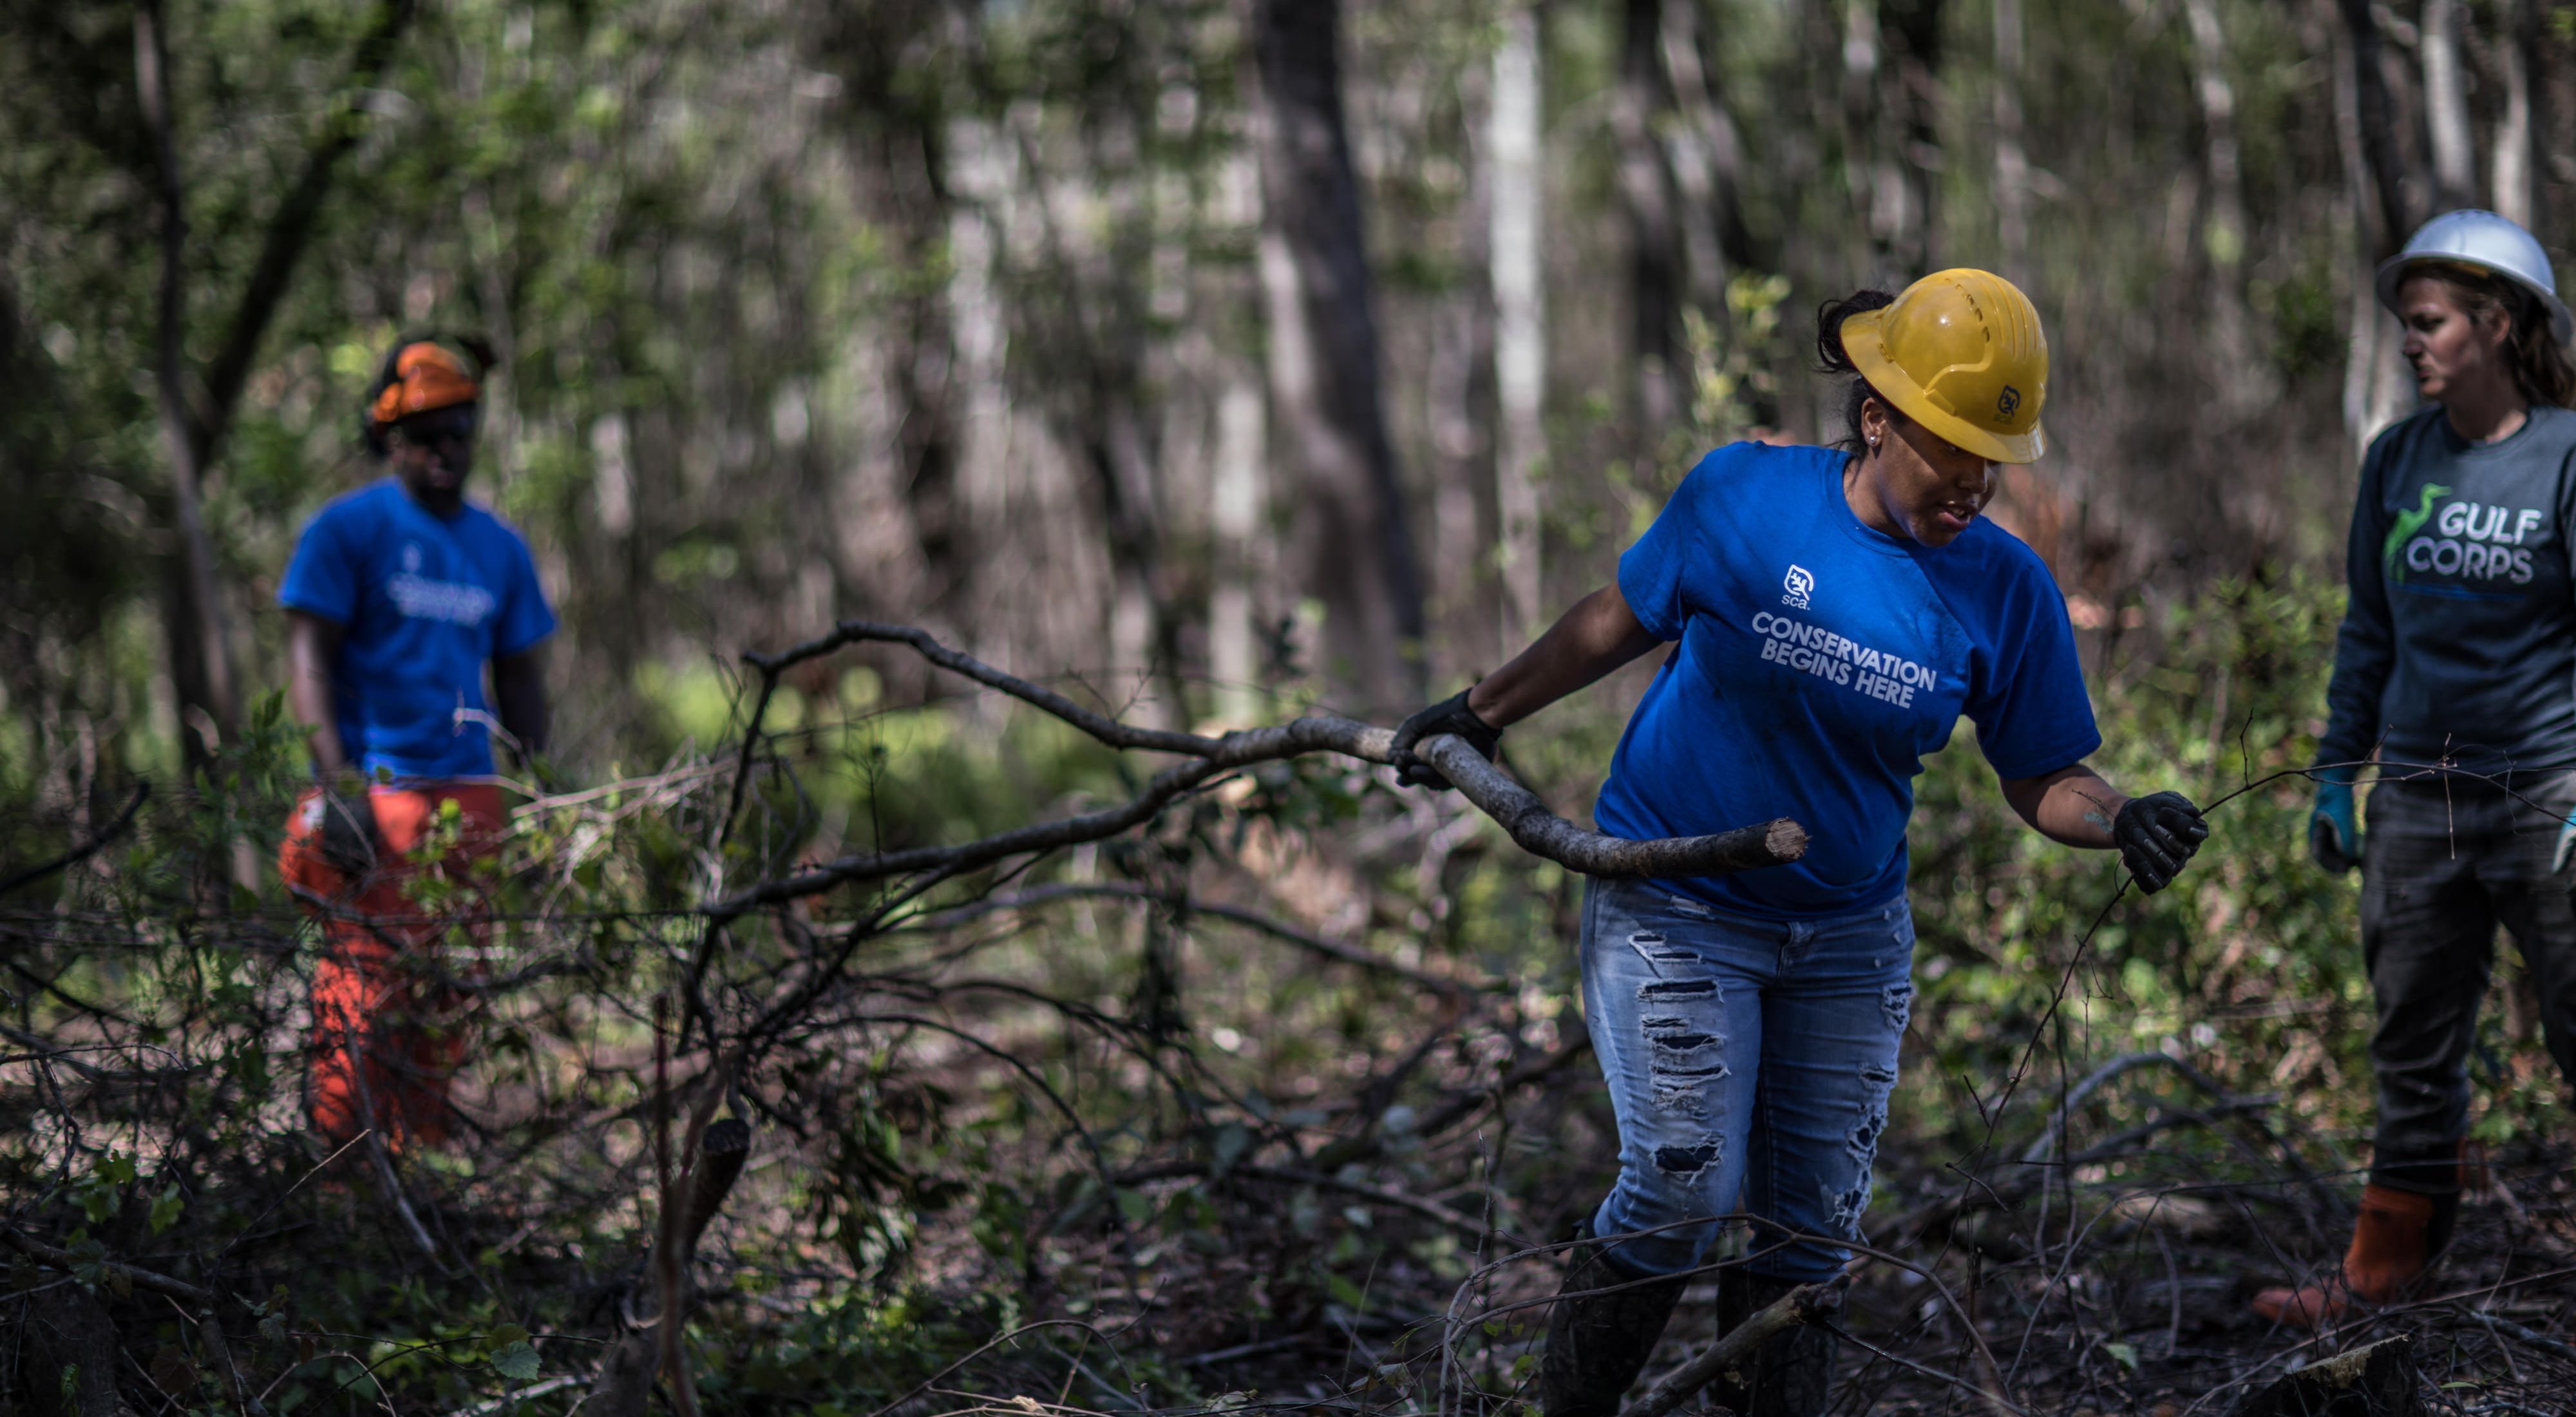 Three young people in hard hats, gloves and conservation corps shirts, clearing branches in a forest.